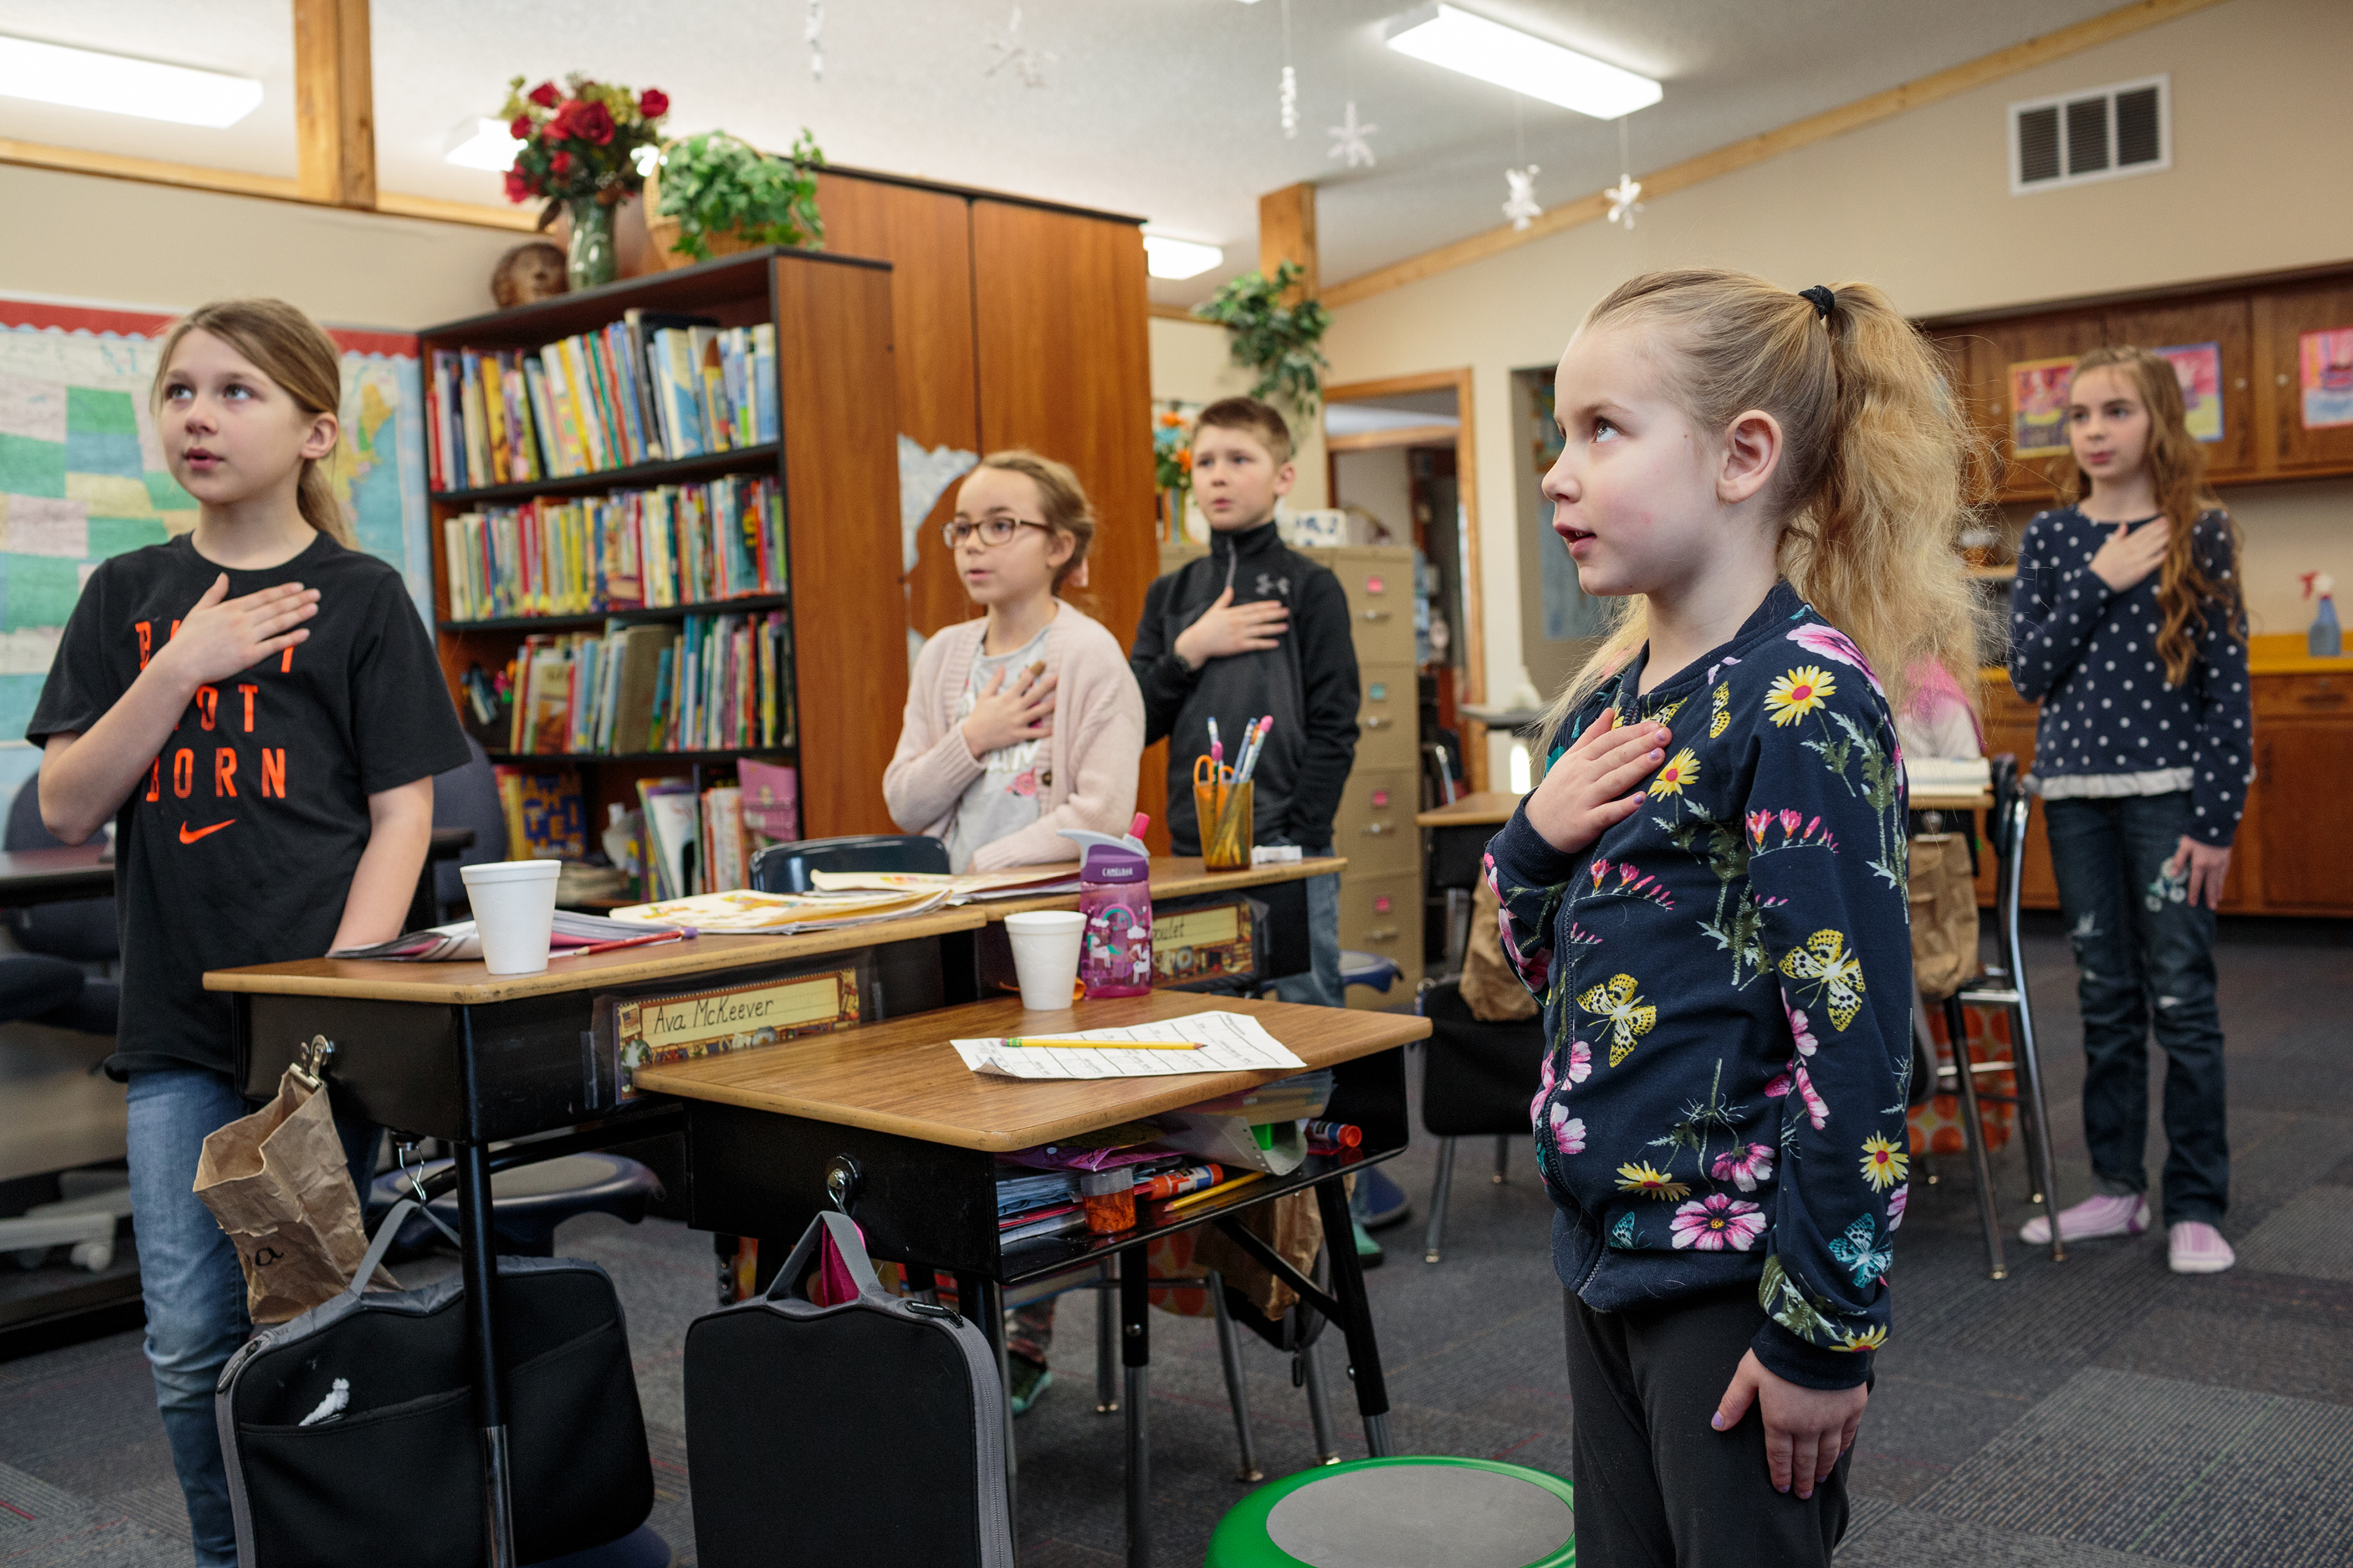 Students recite the Pledge of Allegiance at the Angle Inlet School. The school offers personalized studies for the students, allowing the students to structure their own schedule and studies for the day. The Angle Inlet School teaches grades 1-6 for the 100-or so population of the area.